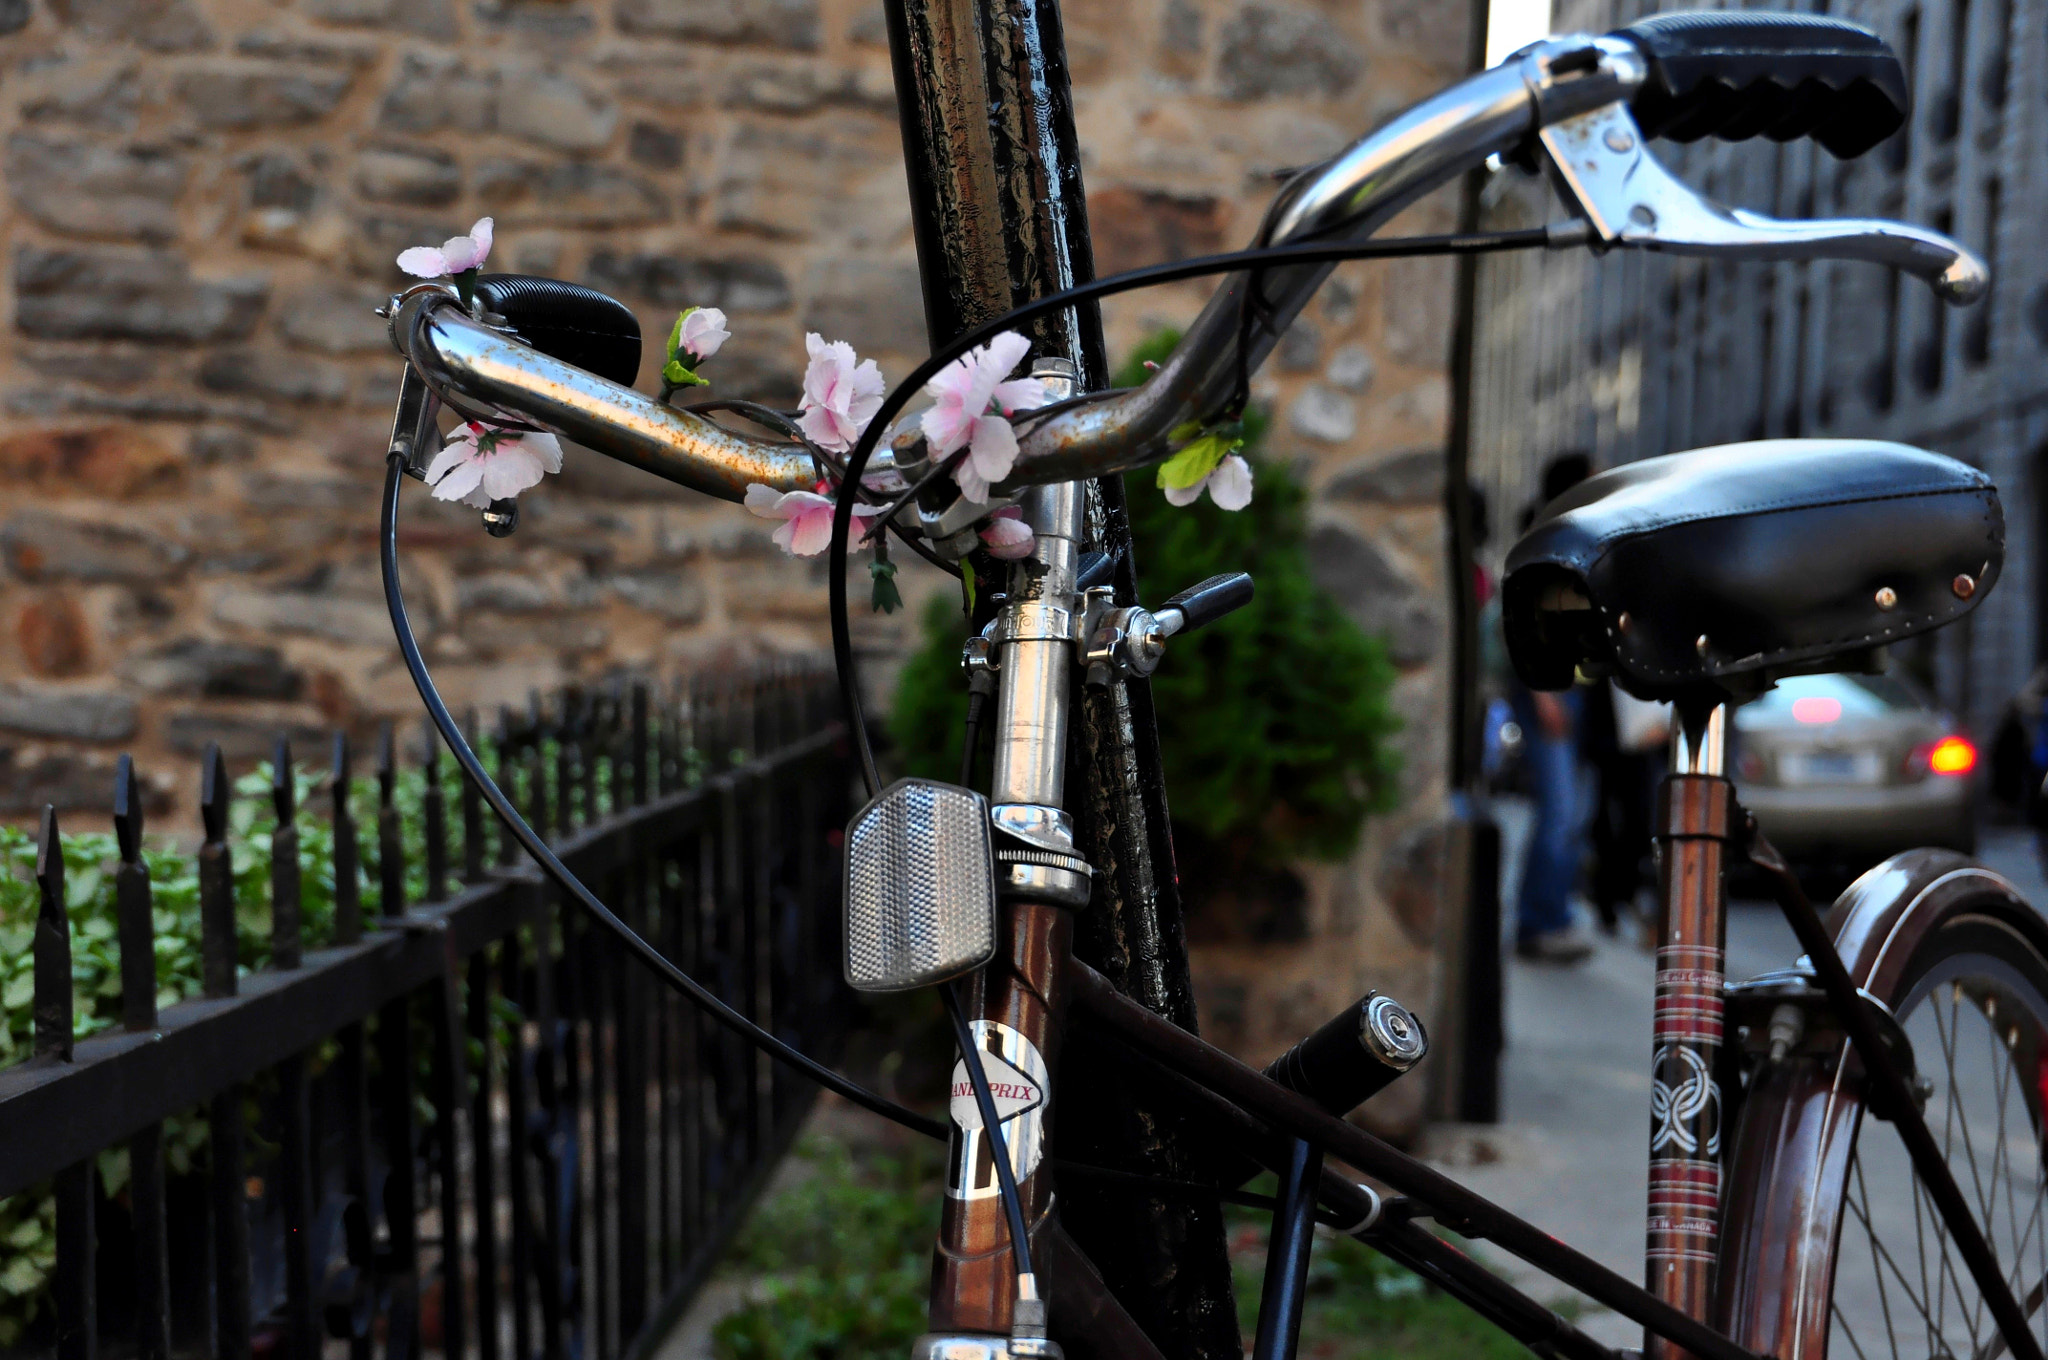 Photograph Bicycle Decor by Christina Ferreira on 500px